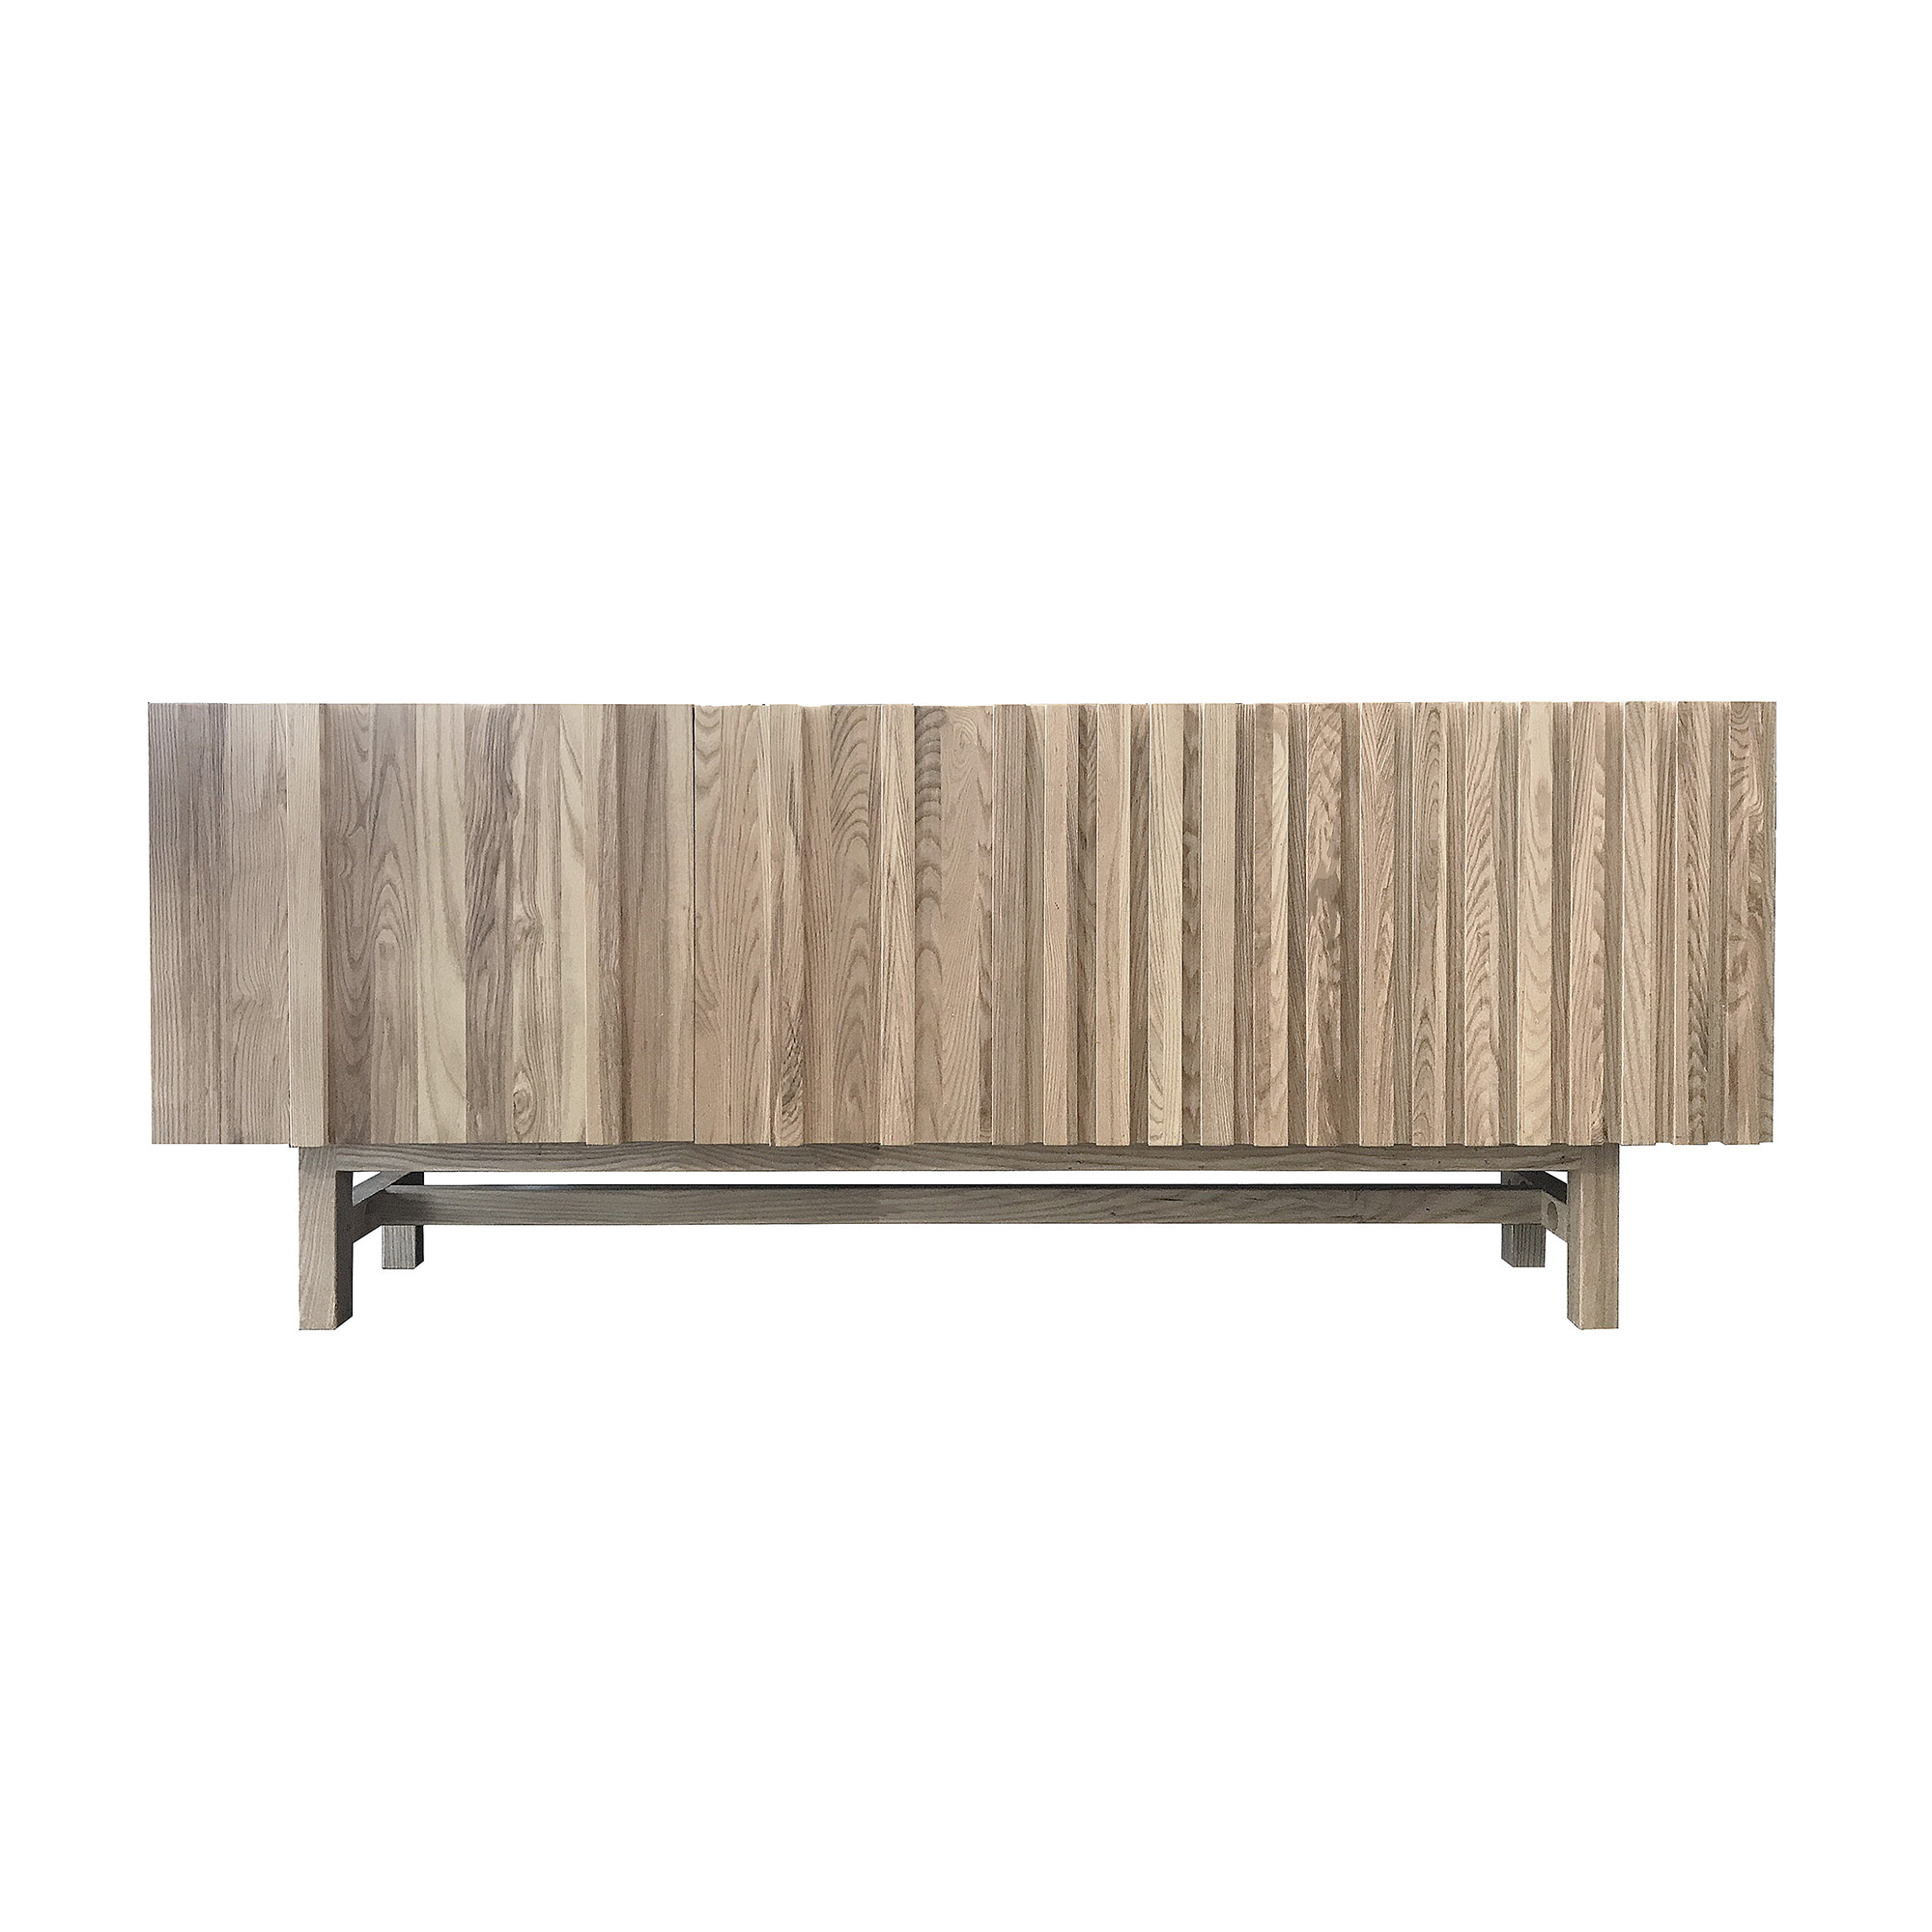 Doby Sideboard Solid Ash Mrd Spatial Elements